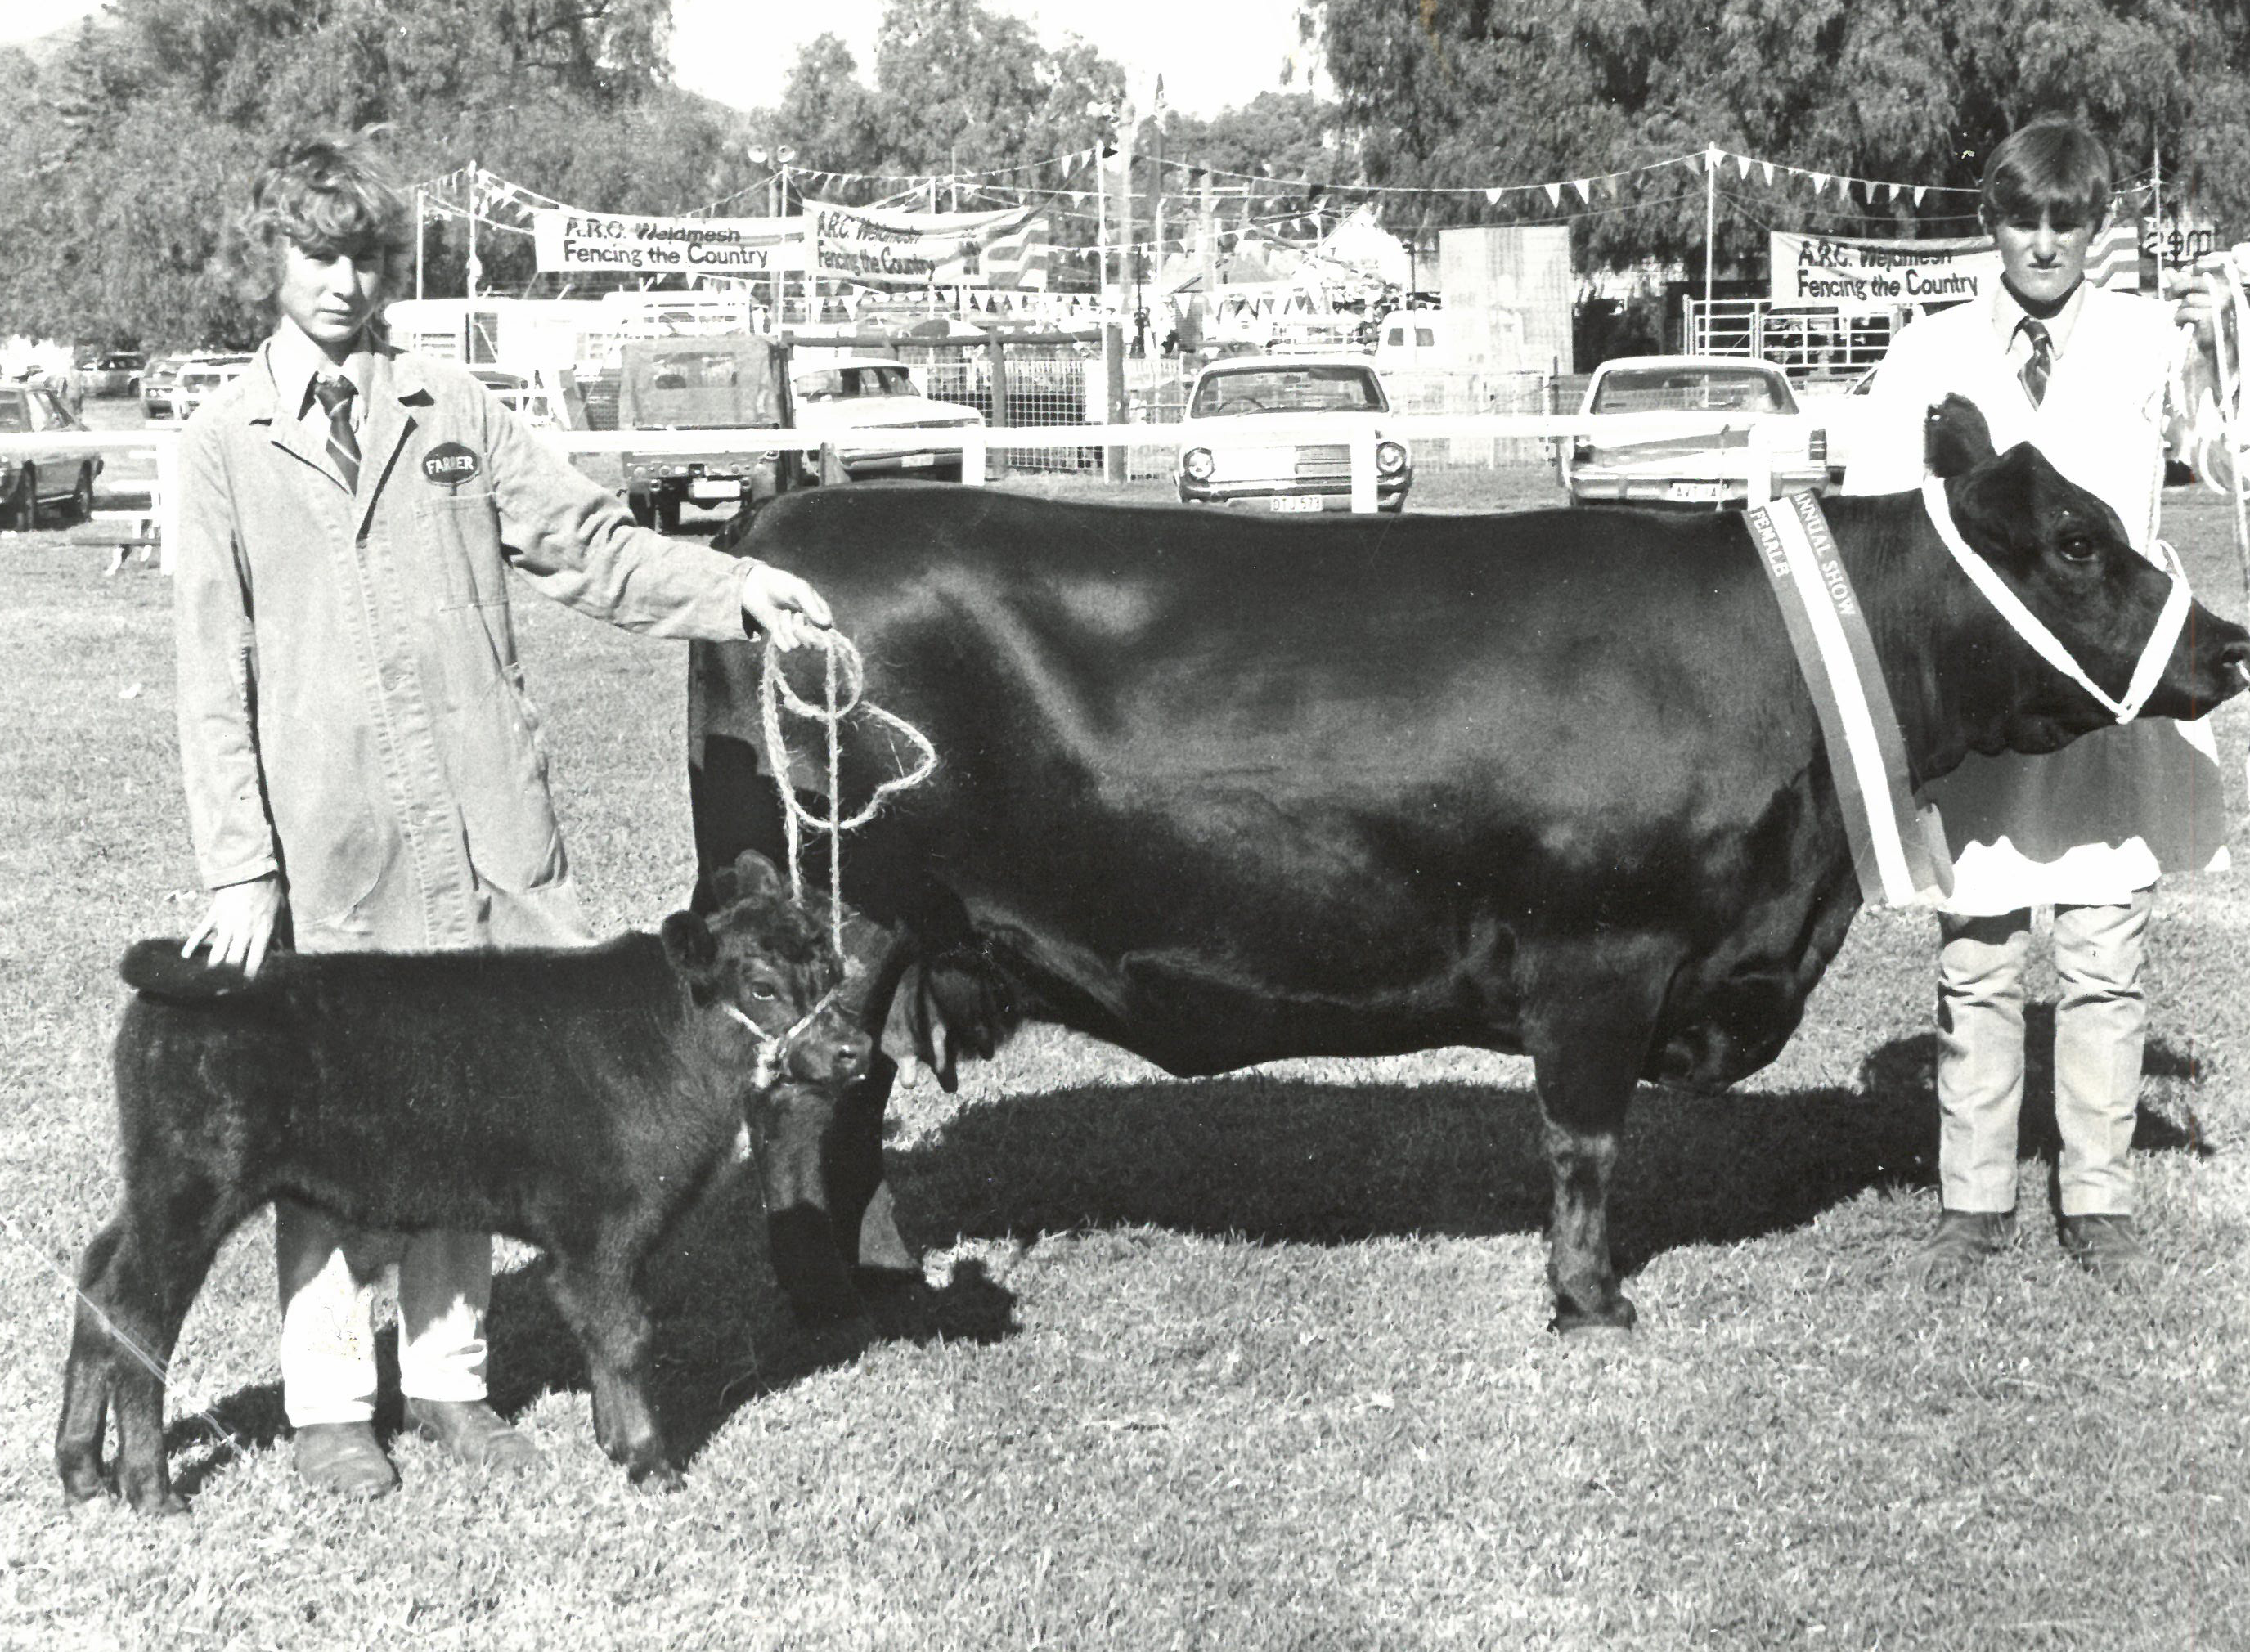 Sydney Royal 1979 Reserve Champion Angus Female Ben Nevis Kiwi (T51)